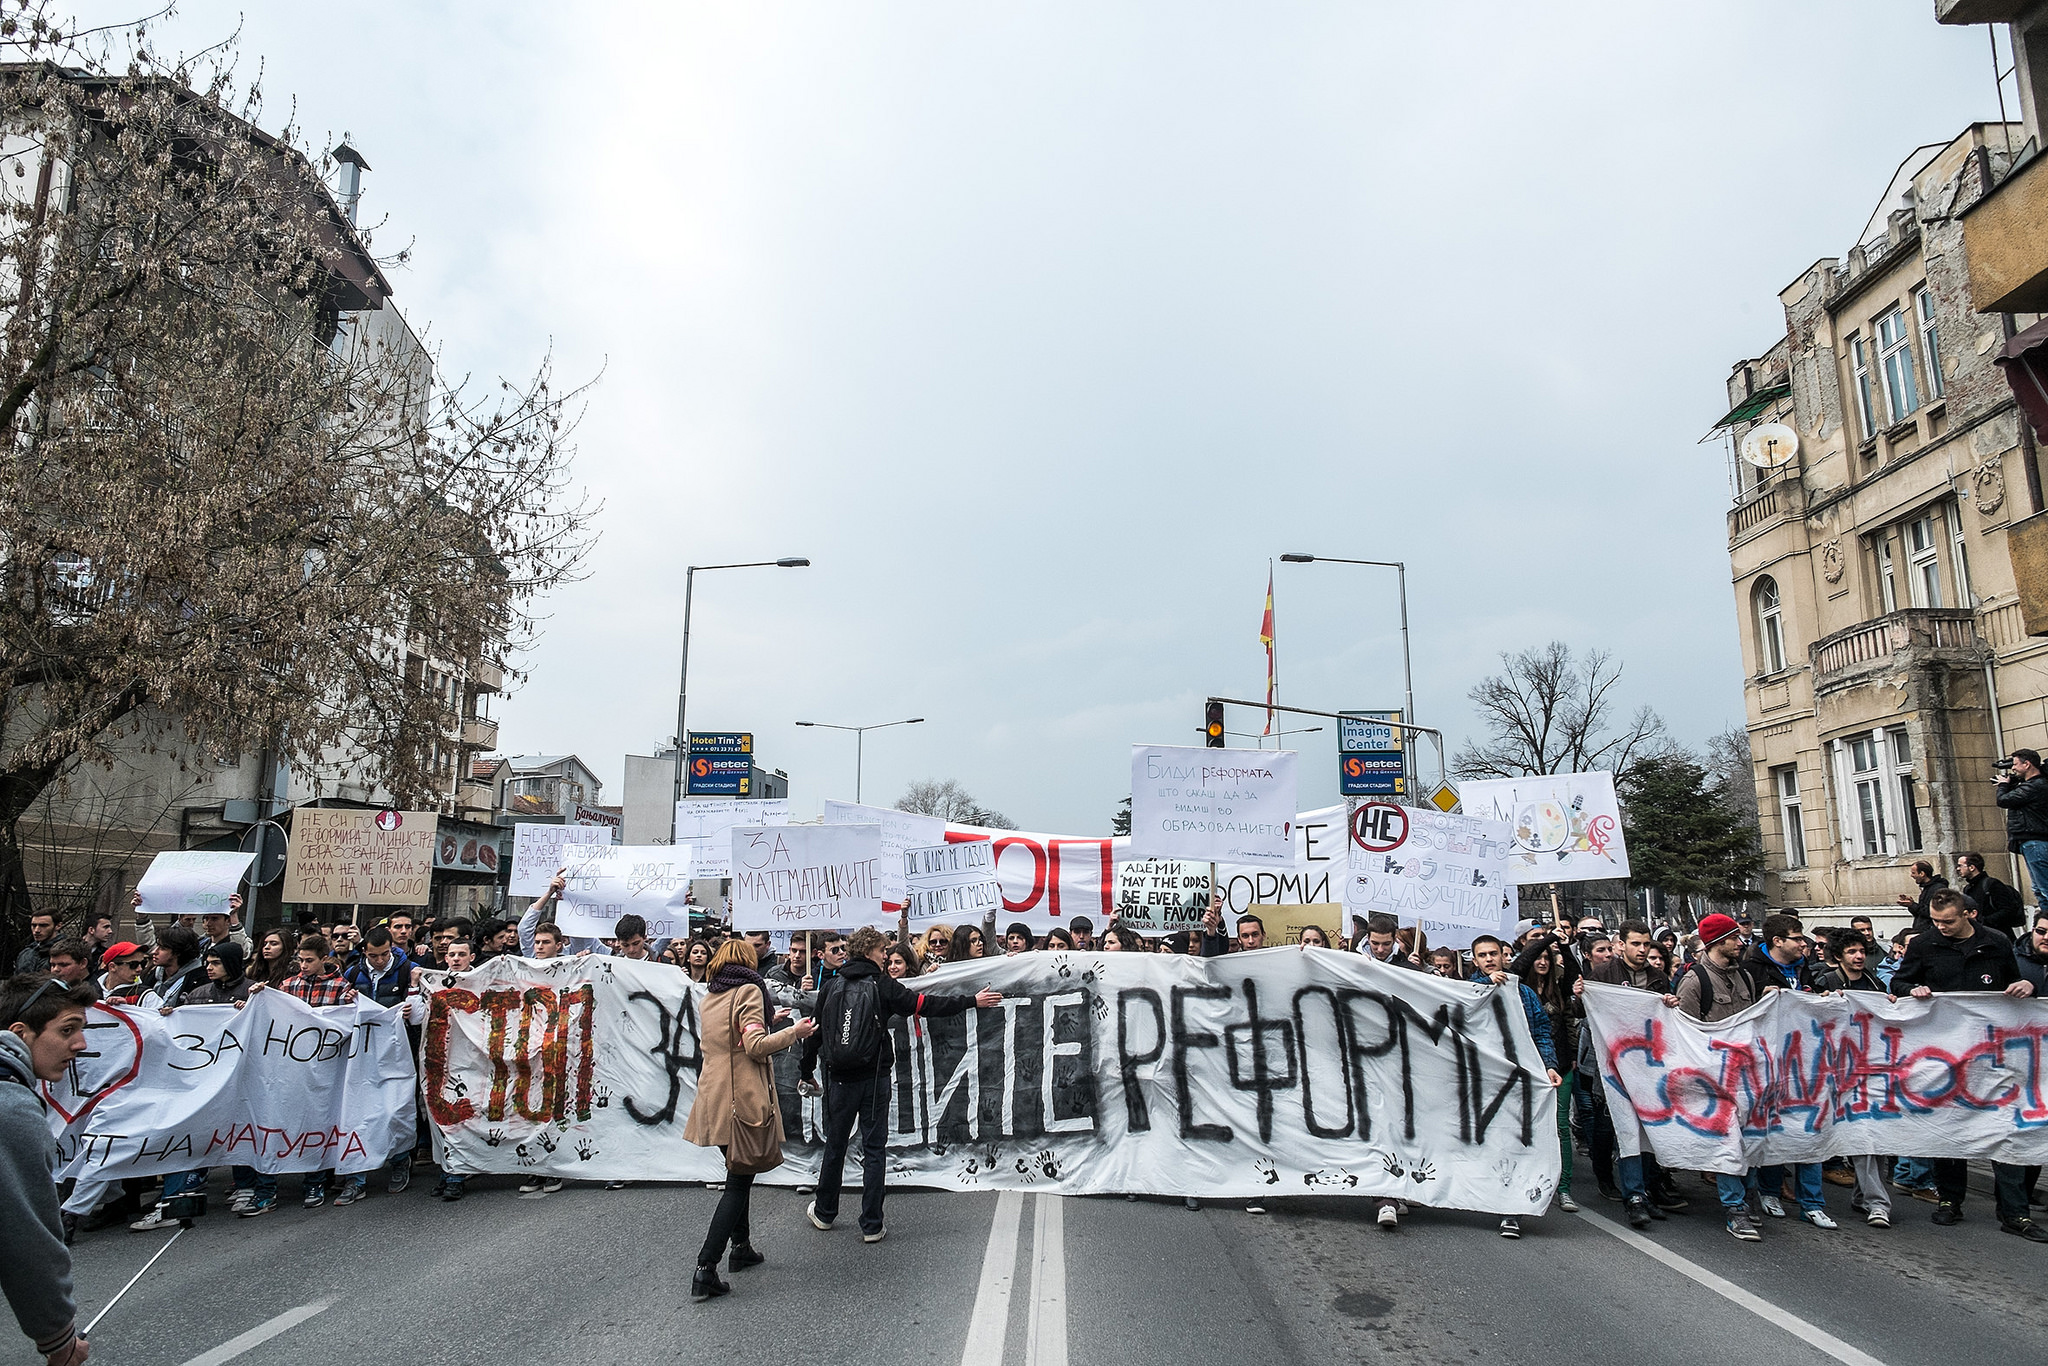 High school students march in downtown Skopje against controversial educational reforms.